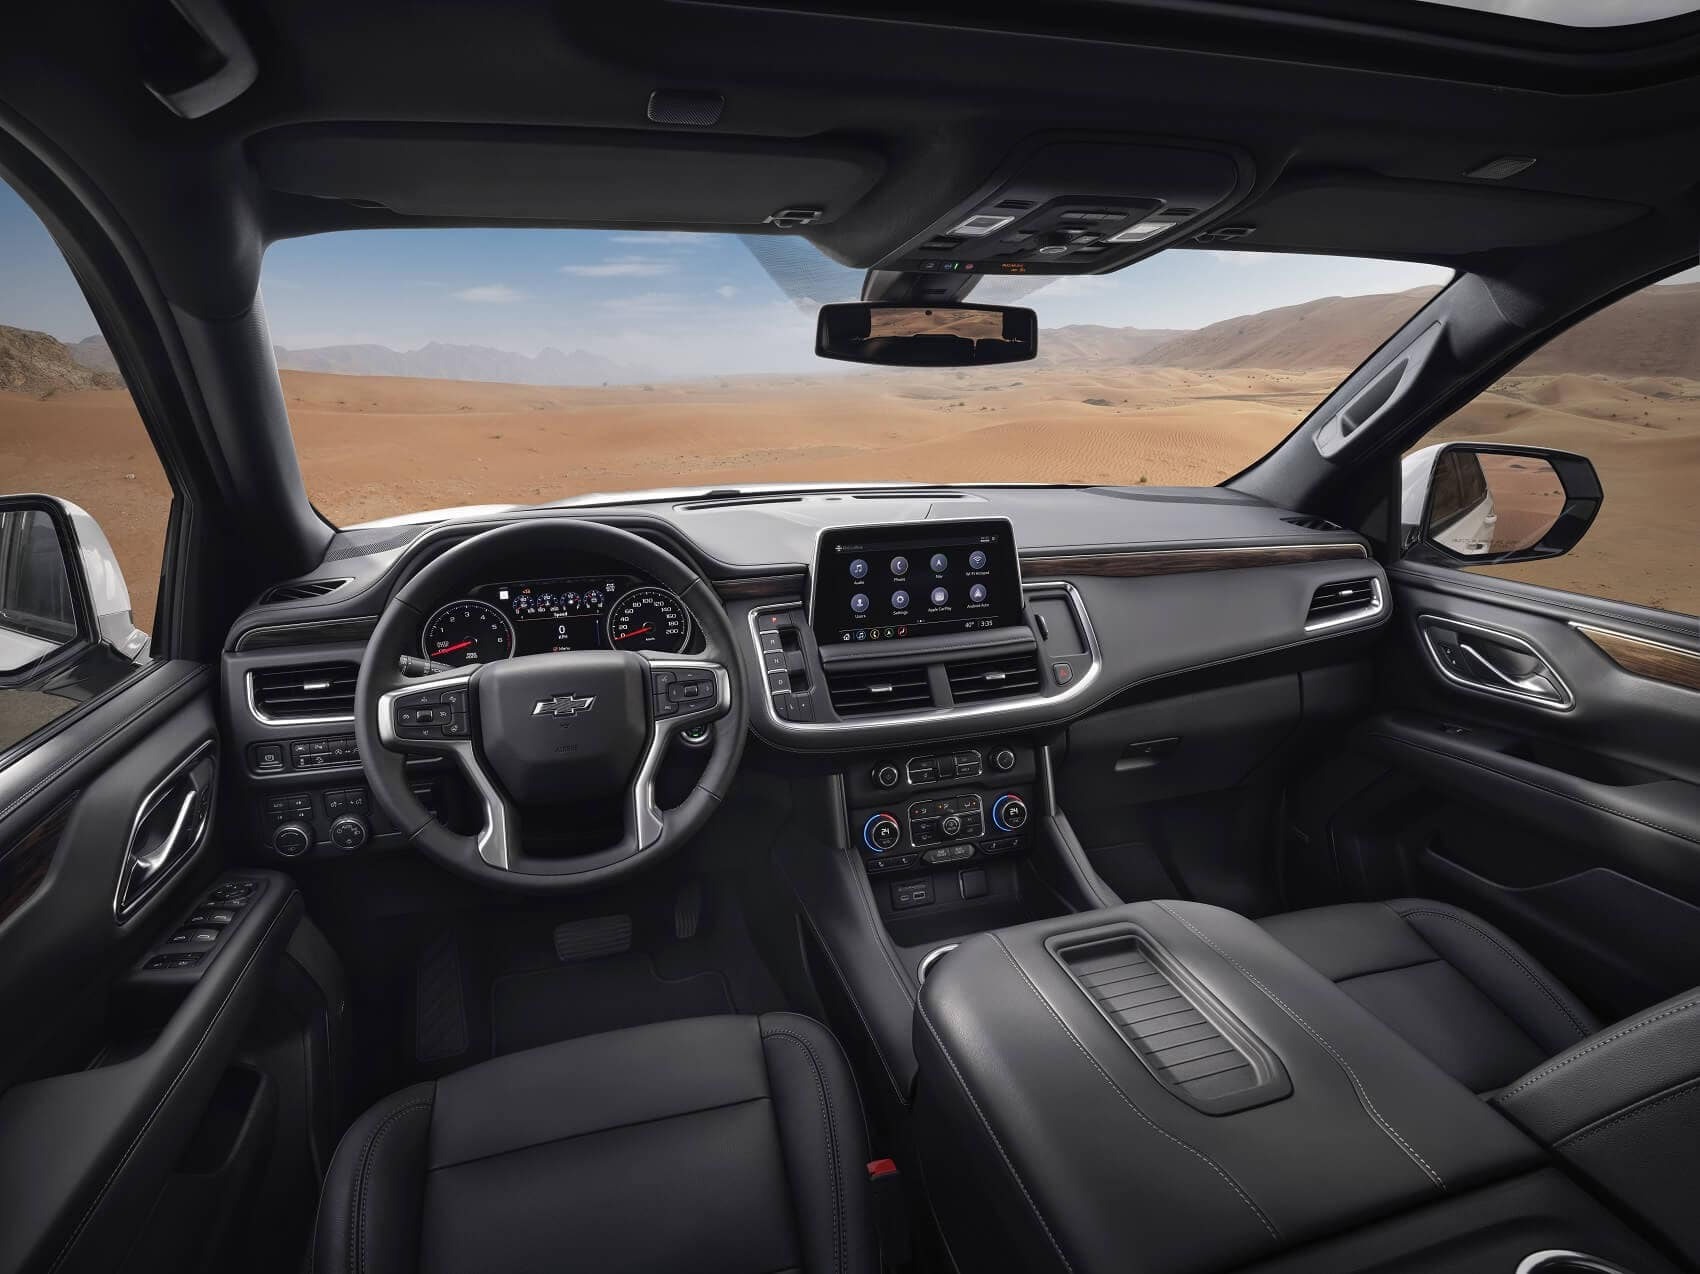 COMPACT SEDANS WITH BIG PERFORMANCE